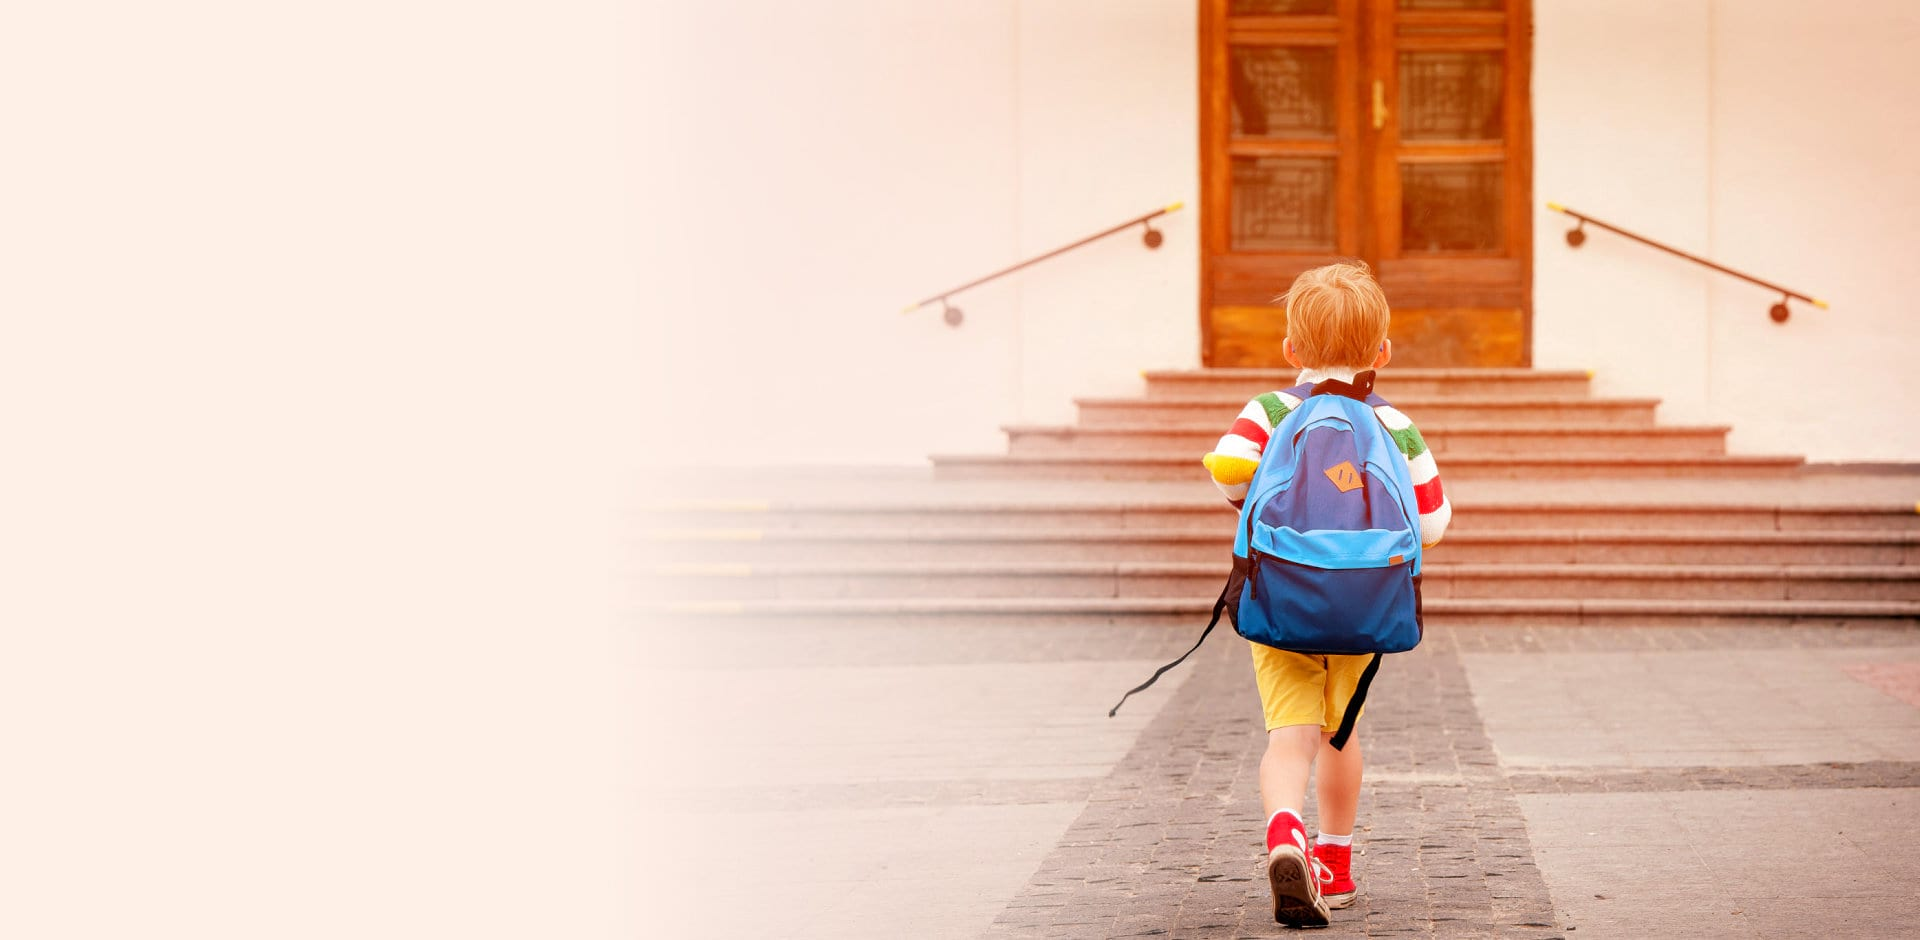 walking kid with backpack